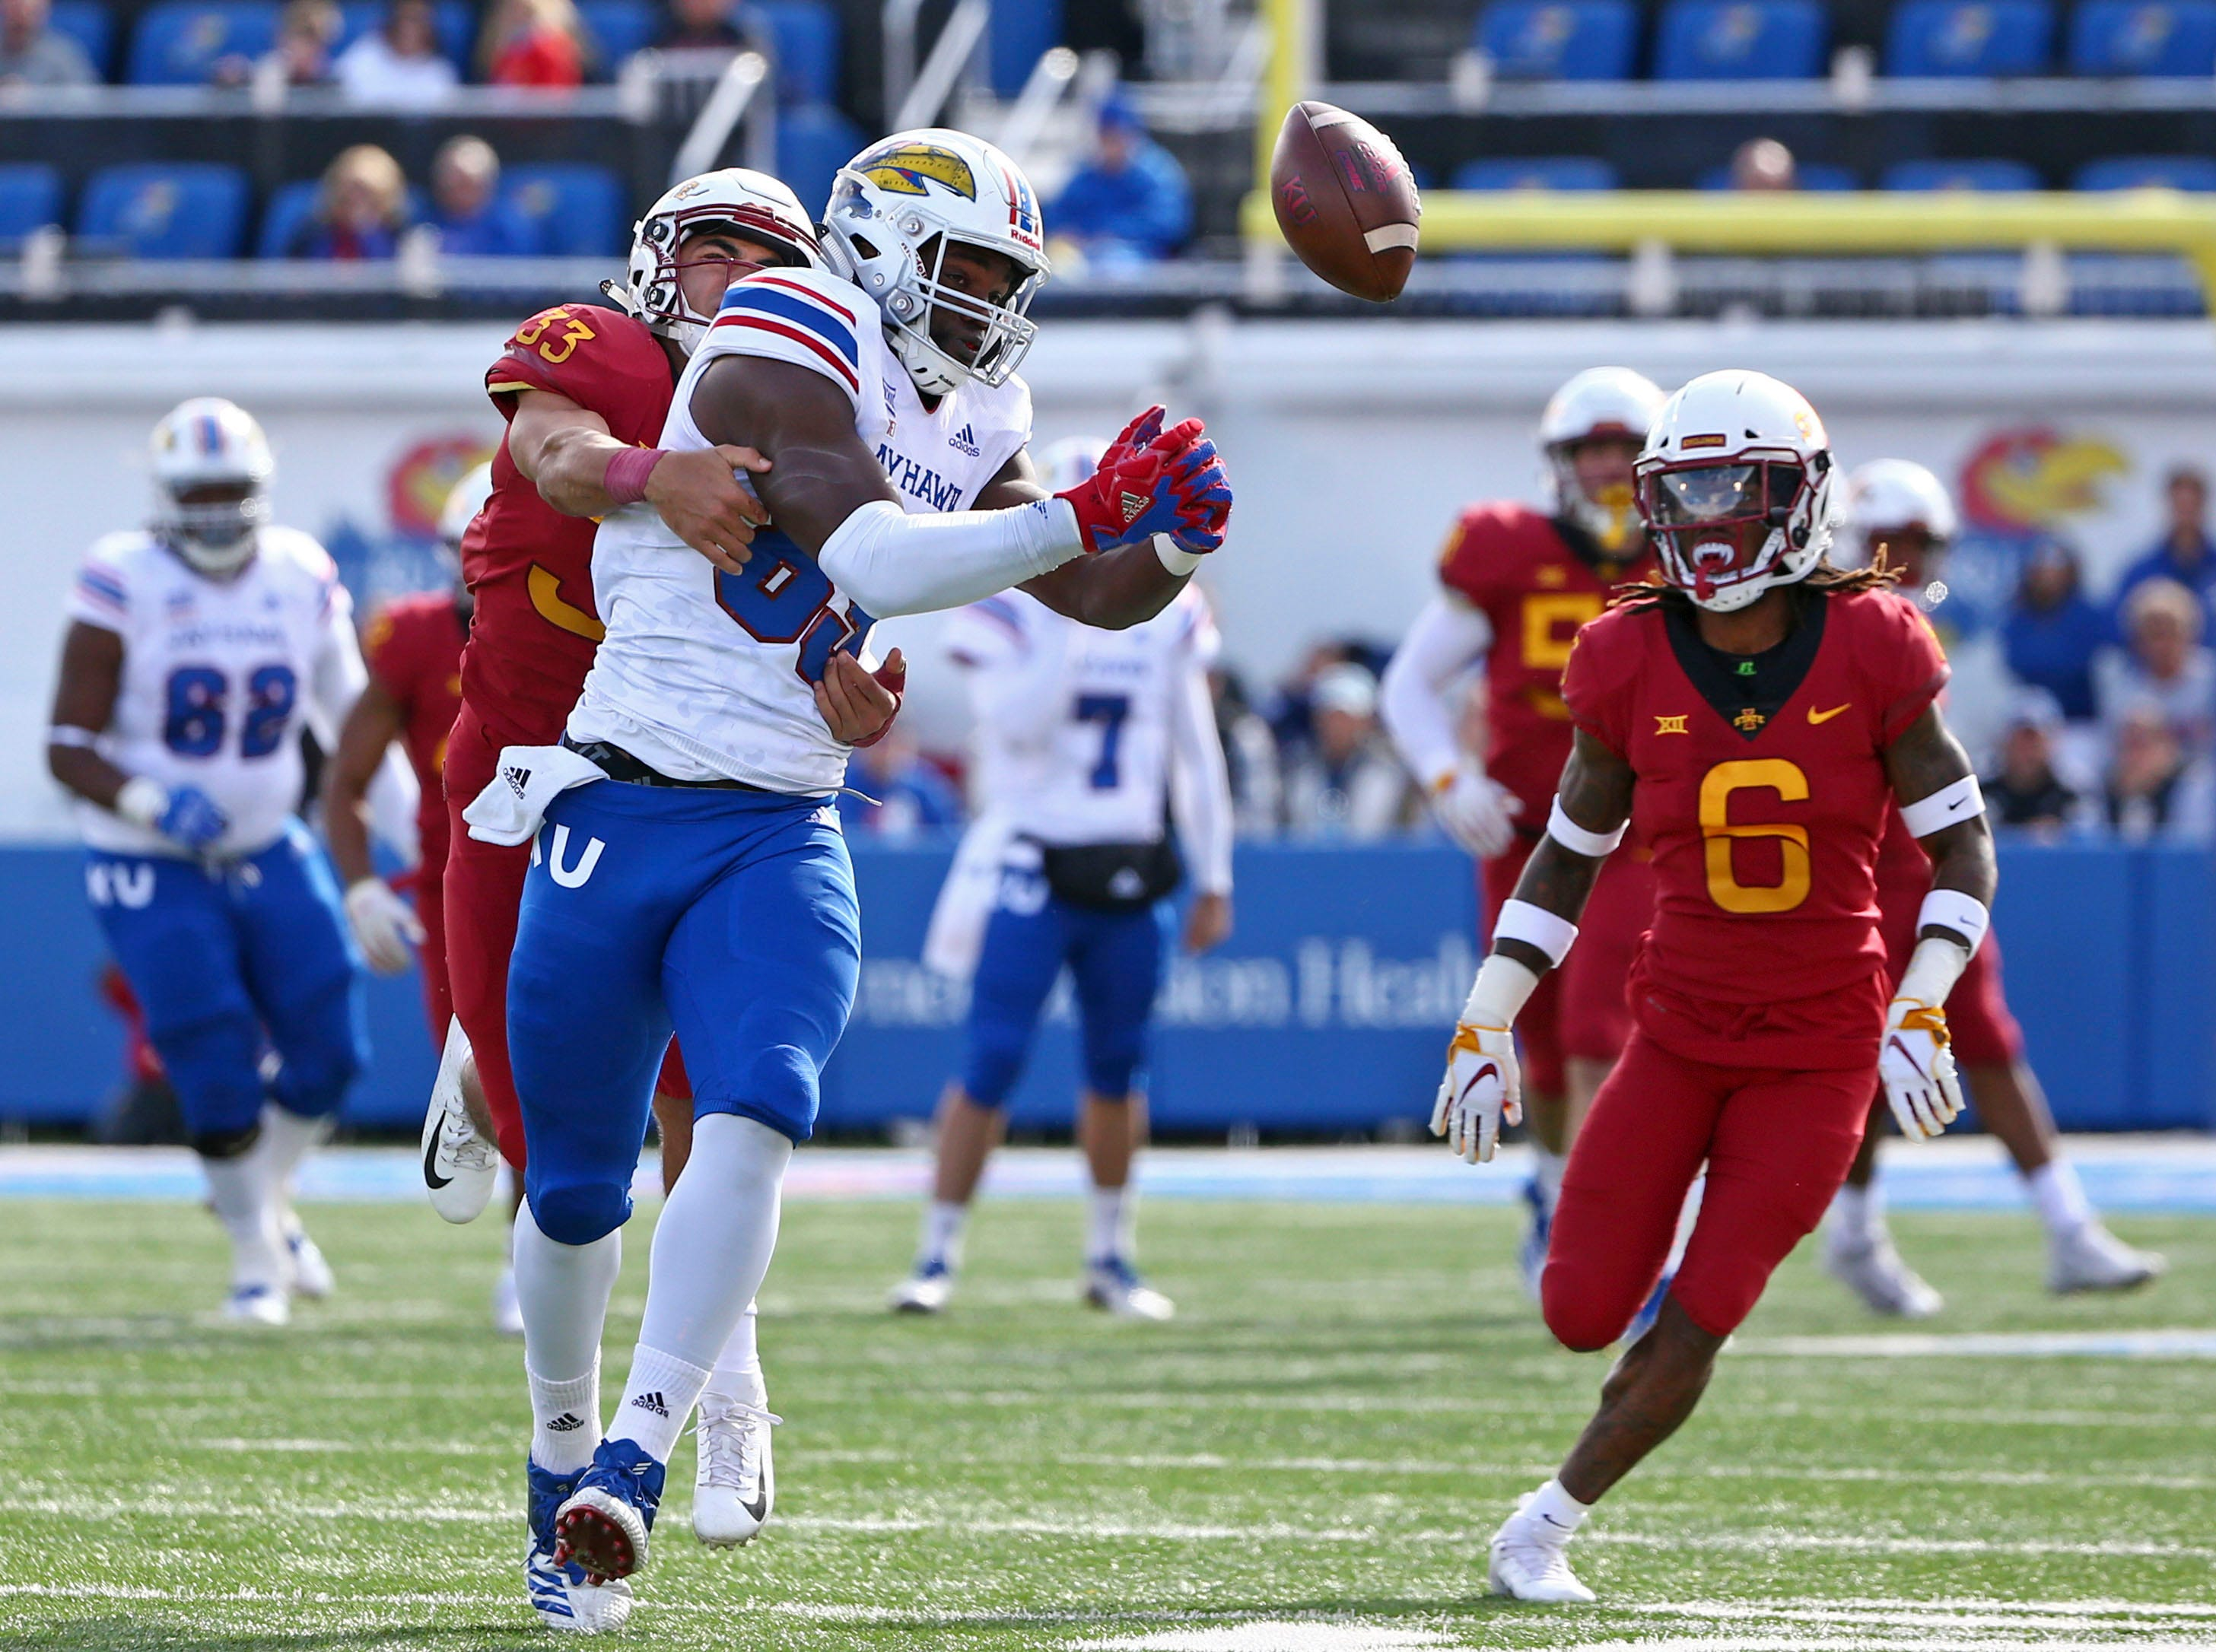 Nov 3, 2018; Lawrence, KS, USA; Kansas Jayhawks tight end Mavin Saunders (89) is unable to make the catch as Iowa State Cyclones defensive backs Braxton Lewis (33) and De'Monte Ruth (6) defend in the second half at Memorial Stadium.